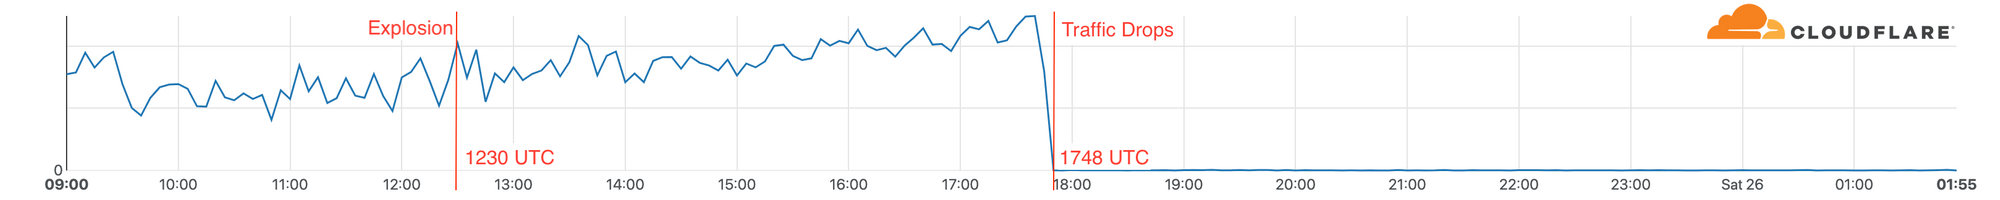 Looking at traffic flow data for AT&T in the Nashville area to Cloudflare we can see that services continued operating (on battery power according to reports) for over five hours after the explosion, but at 1748 UTC we saw a dramatic drop in traffic. 1748 UTC is close to noon in Nashville when reports indicate that people lost phone and Internet service.